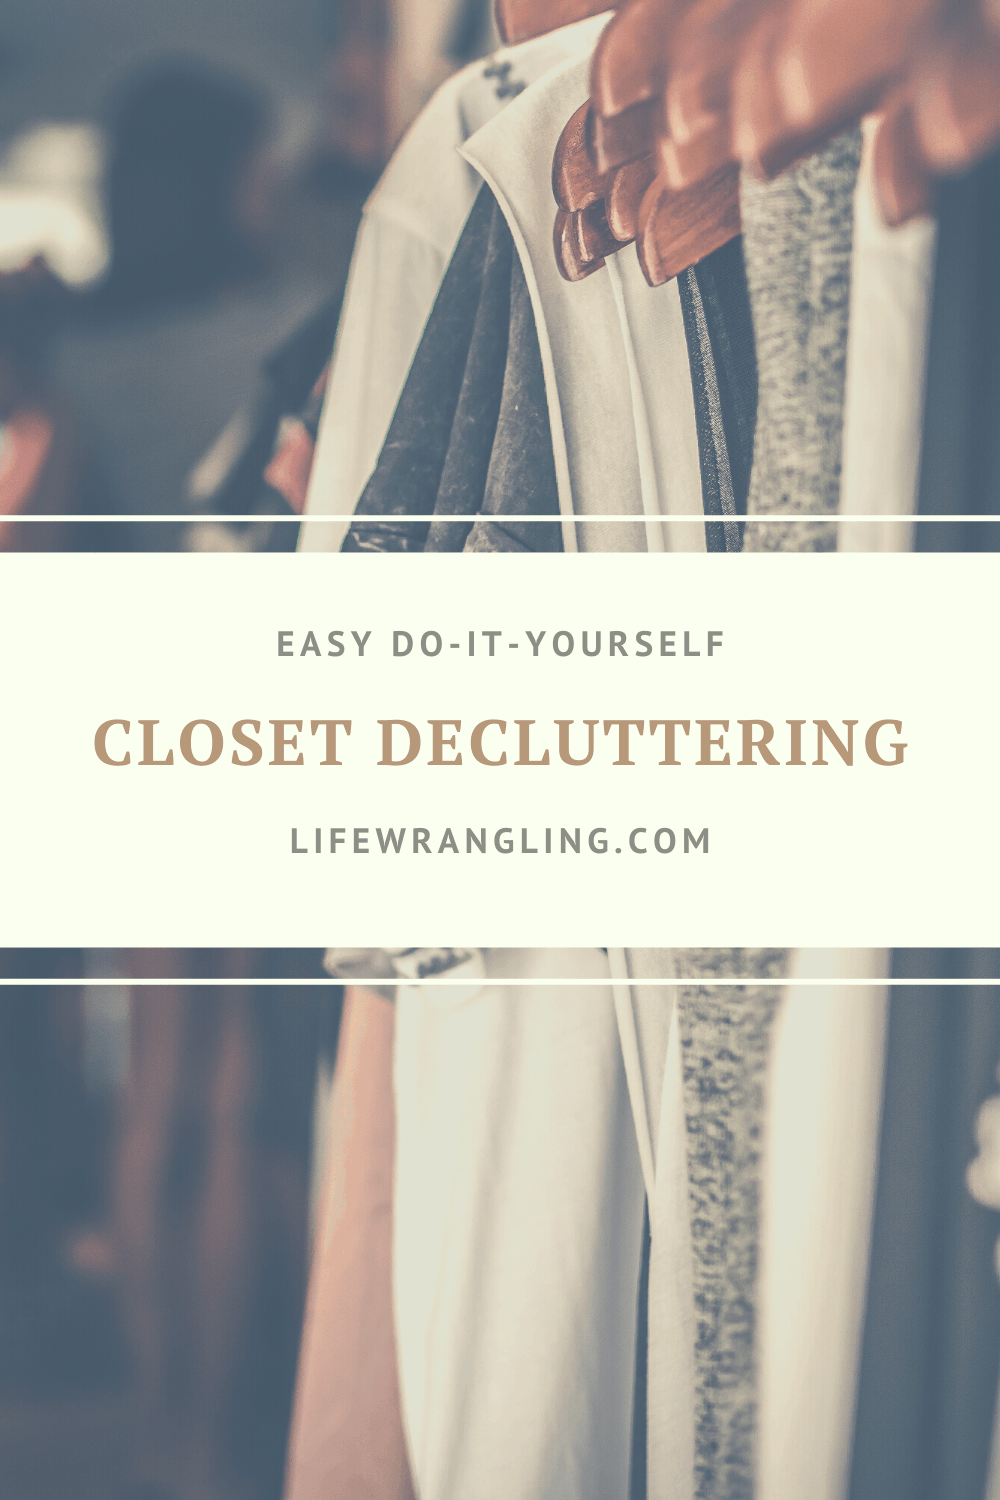 Declutter the closet as the first step in decluttering your home #decluttering #minimalism #project333 #clutter #organize #whattothrowaway